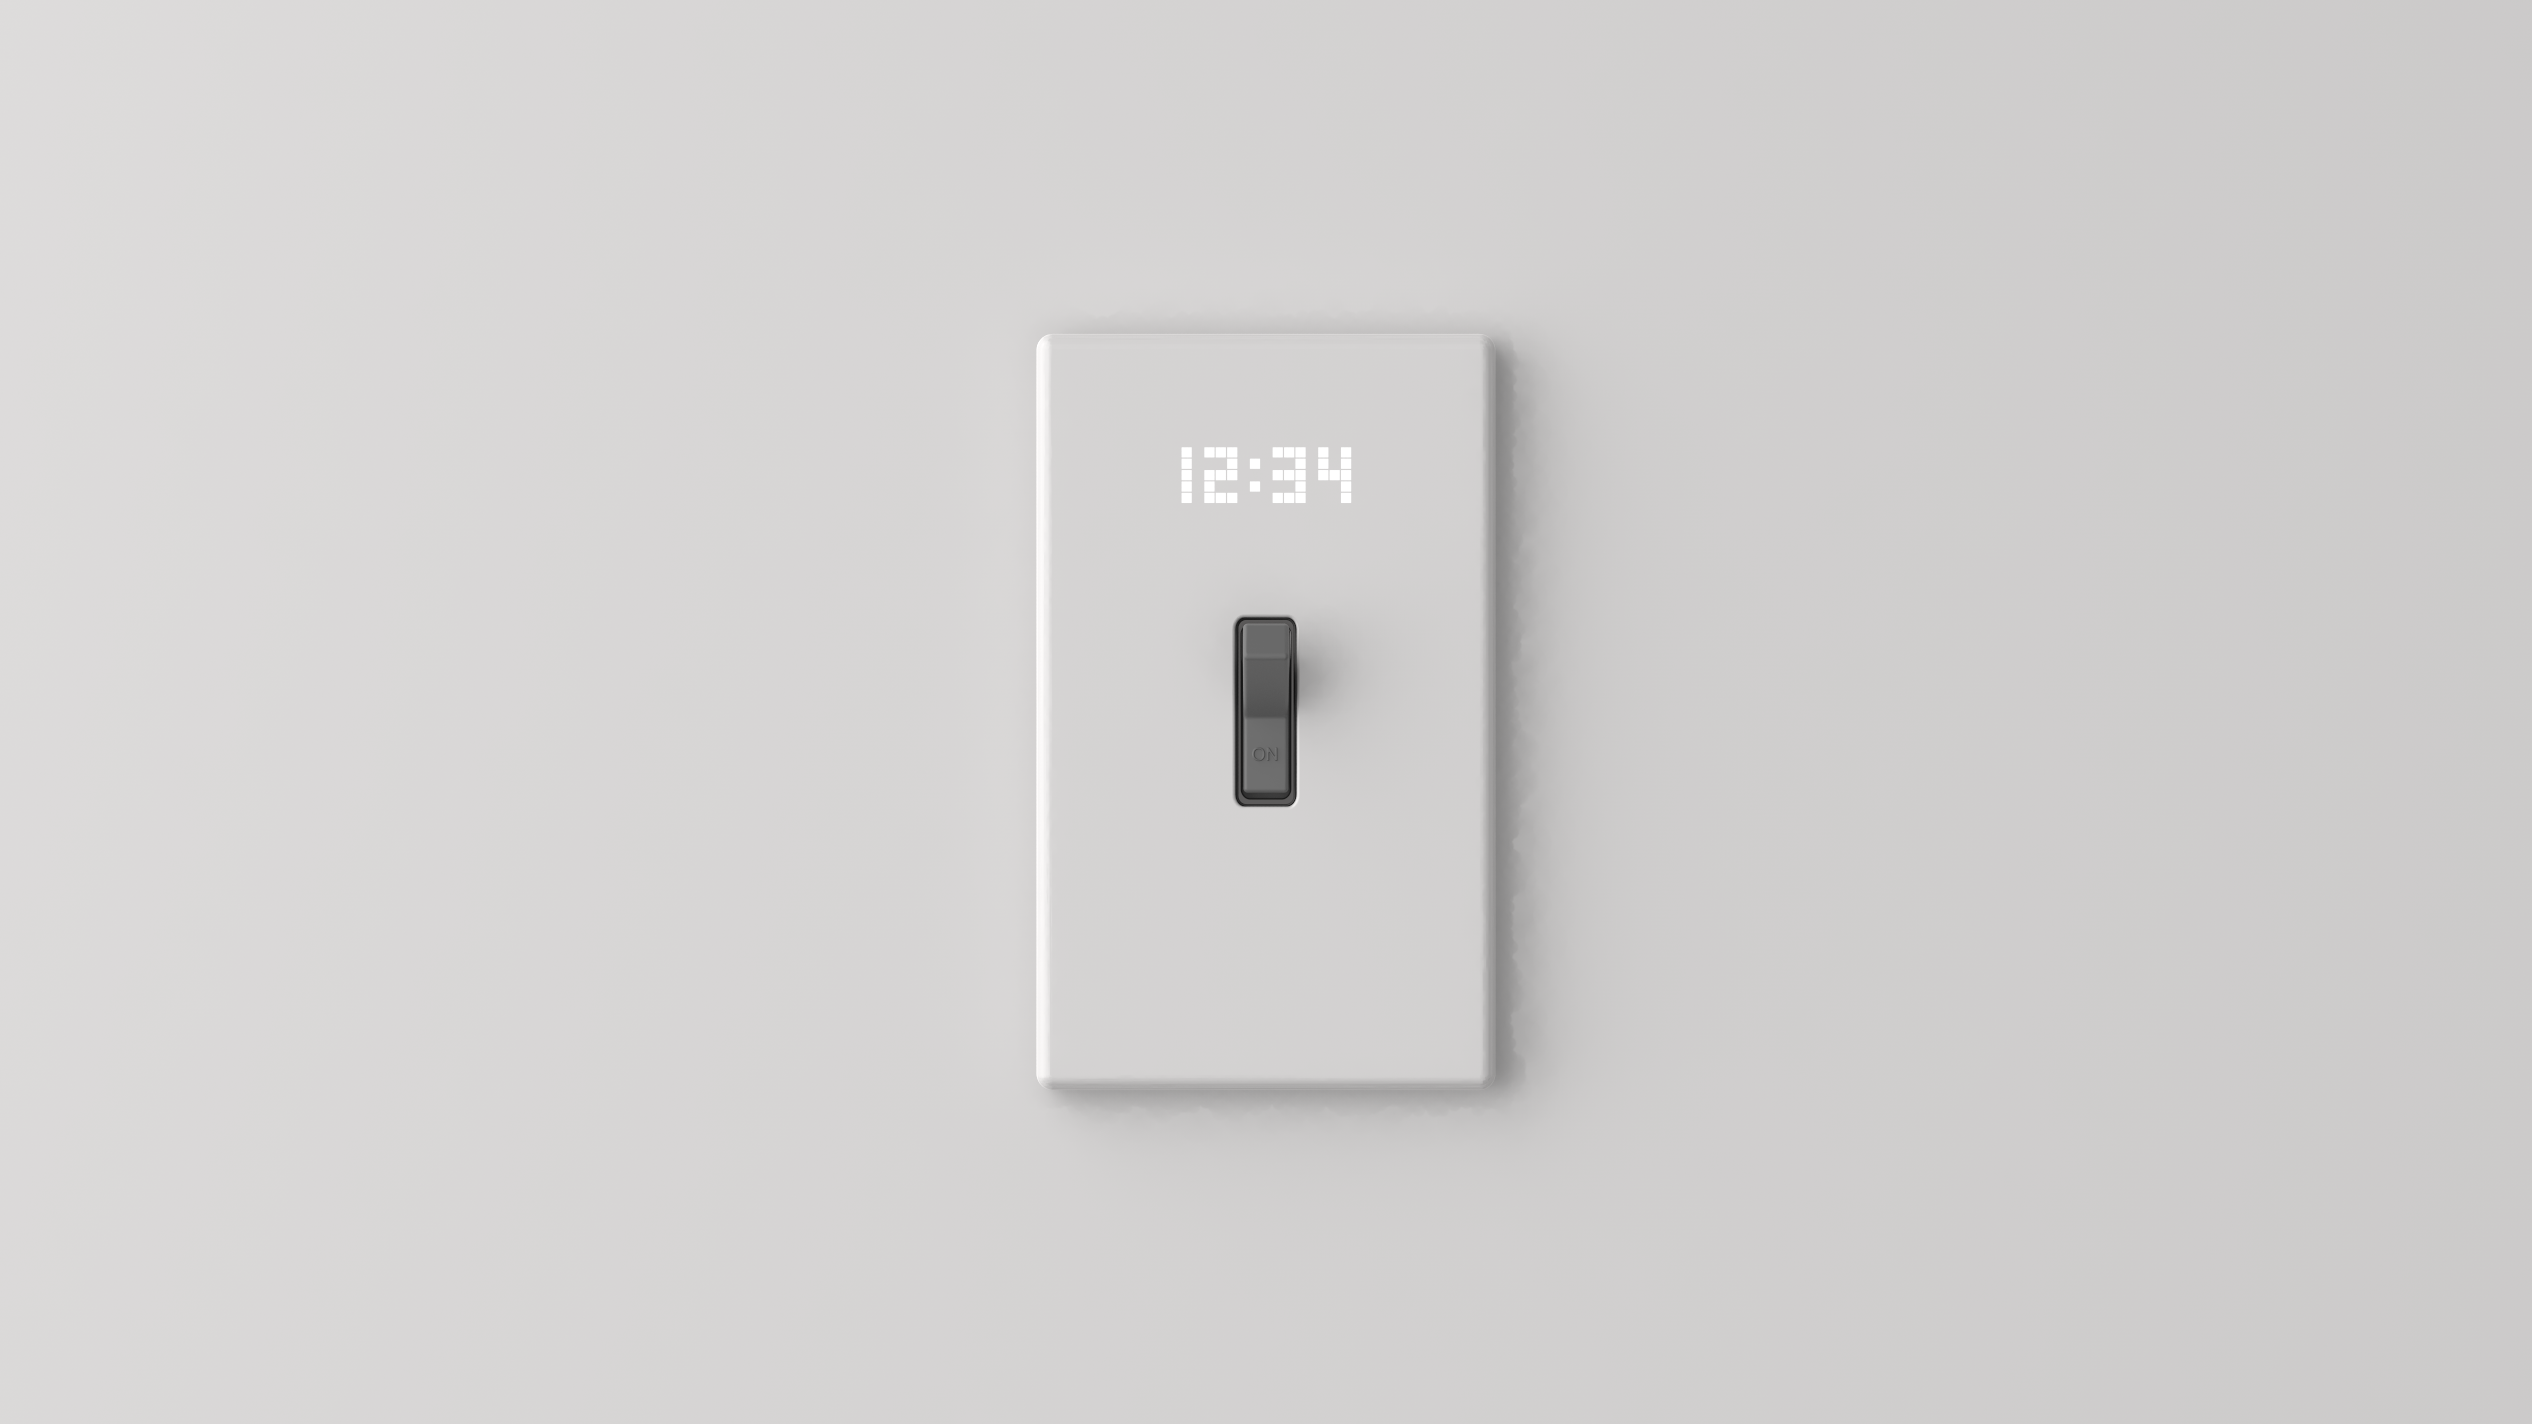 Time switch_Wall clock